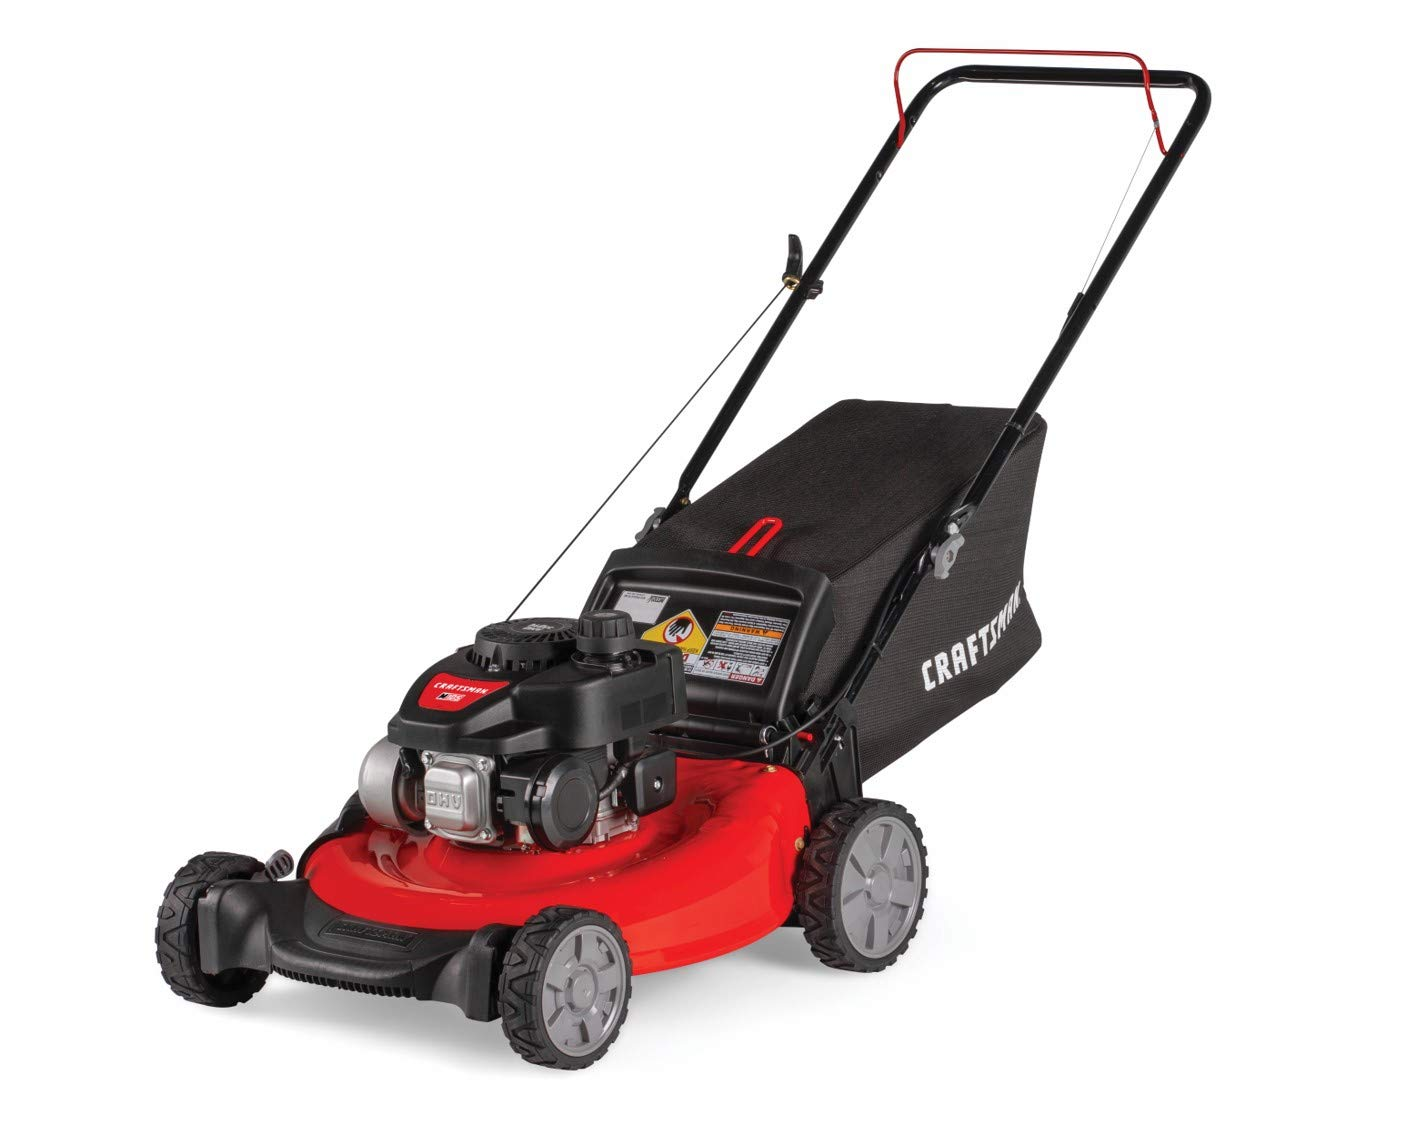 Craftsman M105 Gas Powered Push Lawn Mower